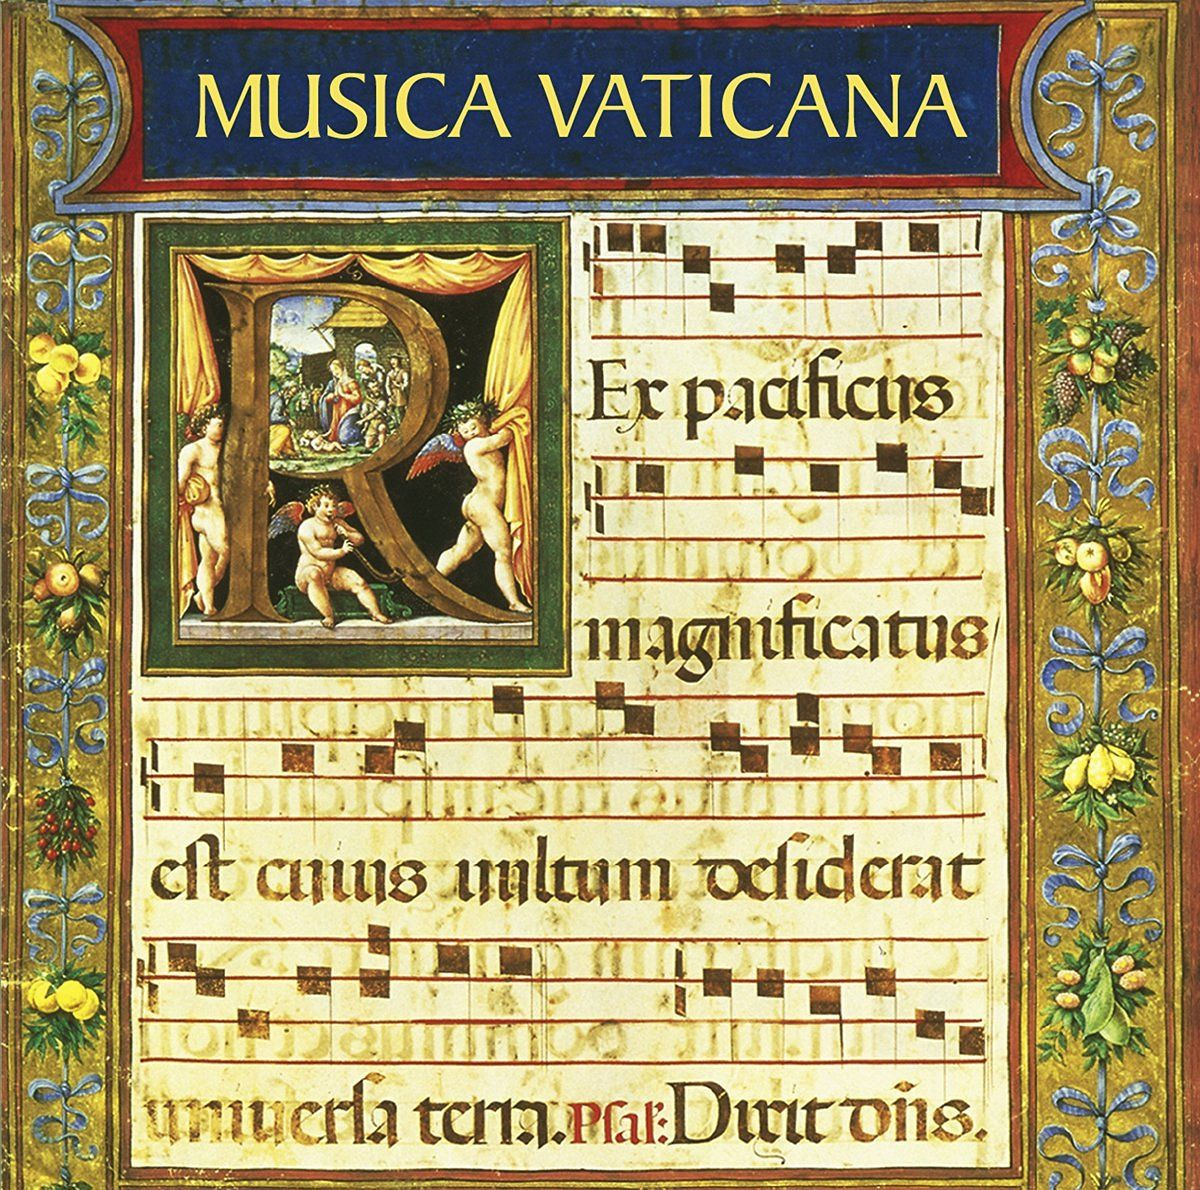 Pomerium - MUSICA VATICANA - Music from the Vatican Manuscripts (1503-1534)